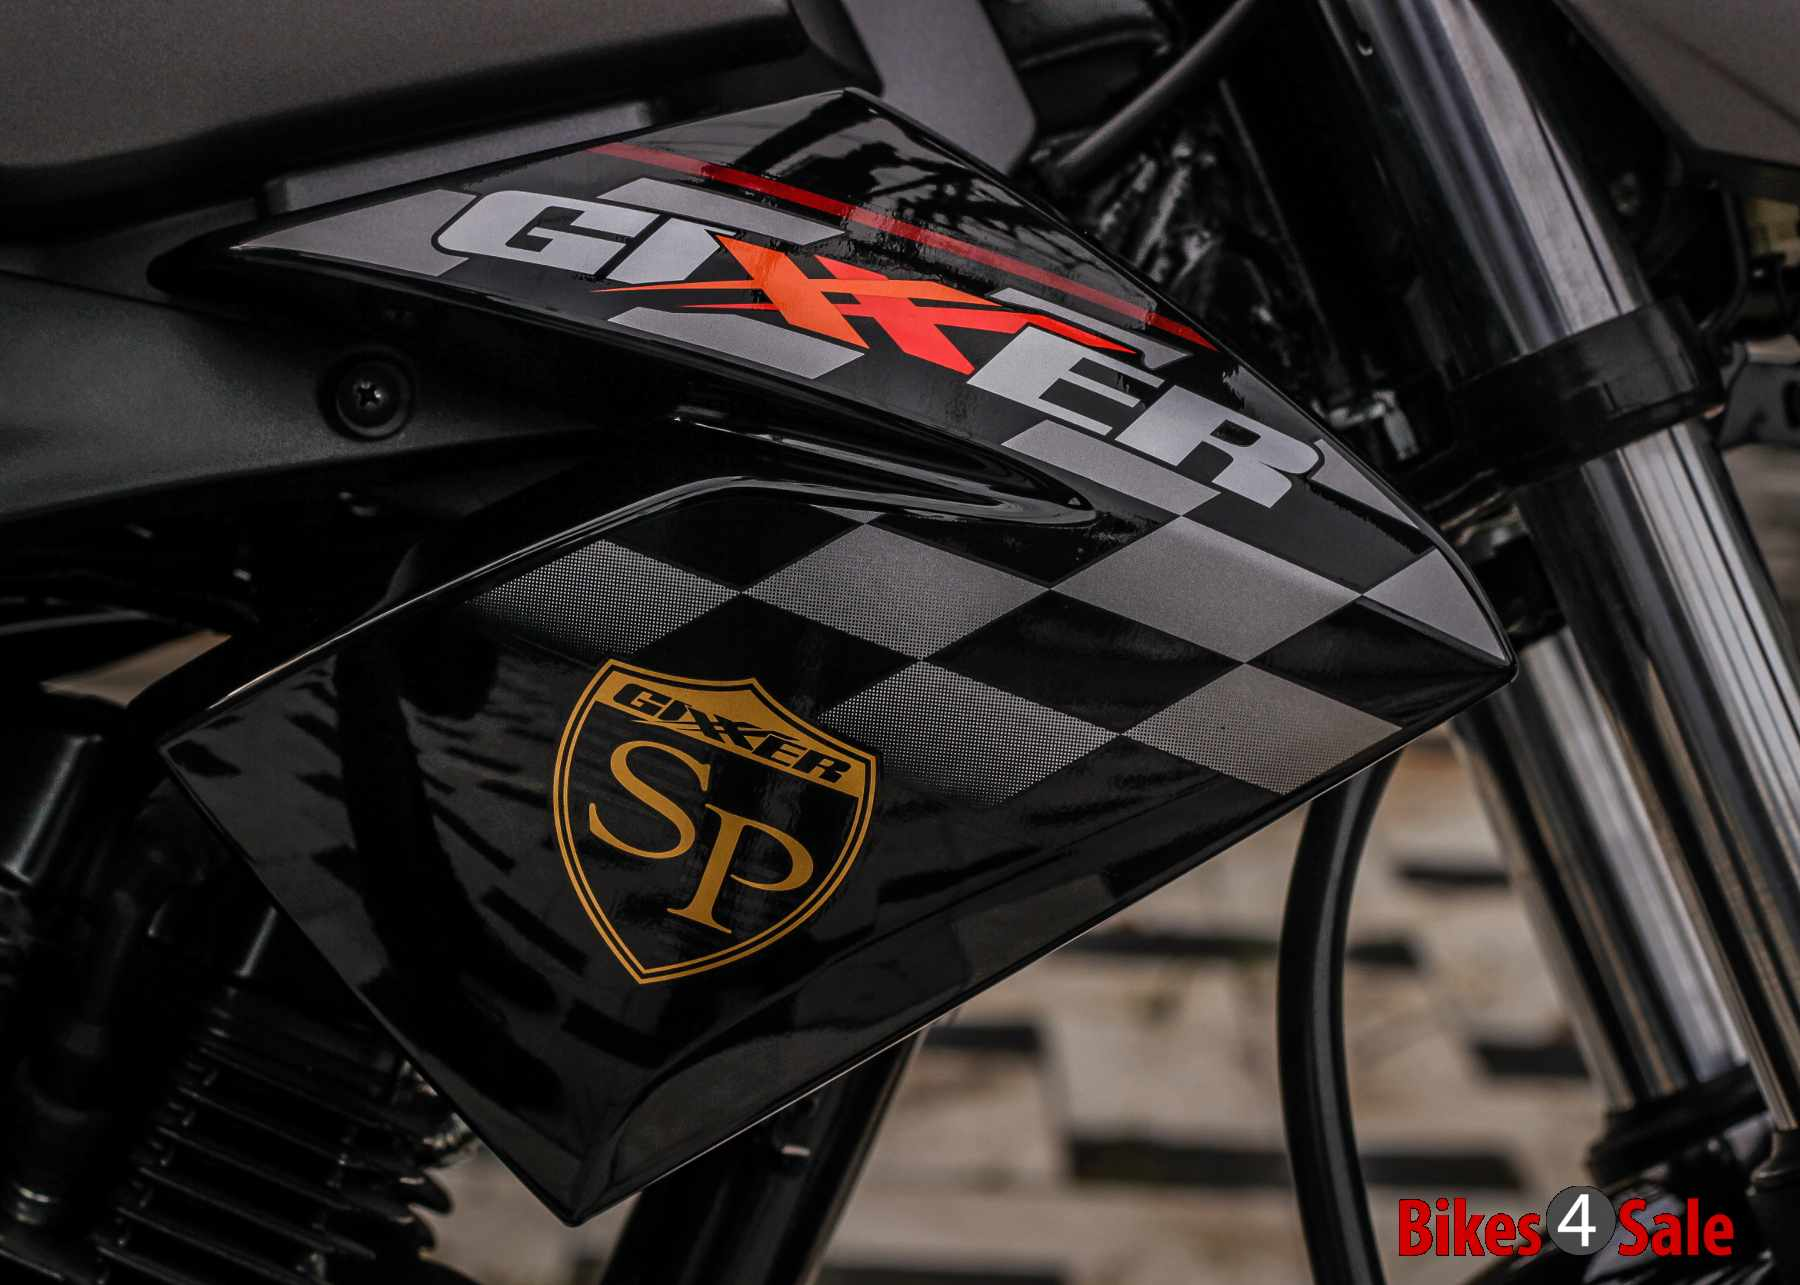 Suzuki Gixxer SP emblem and graphics